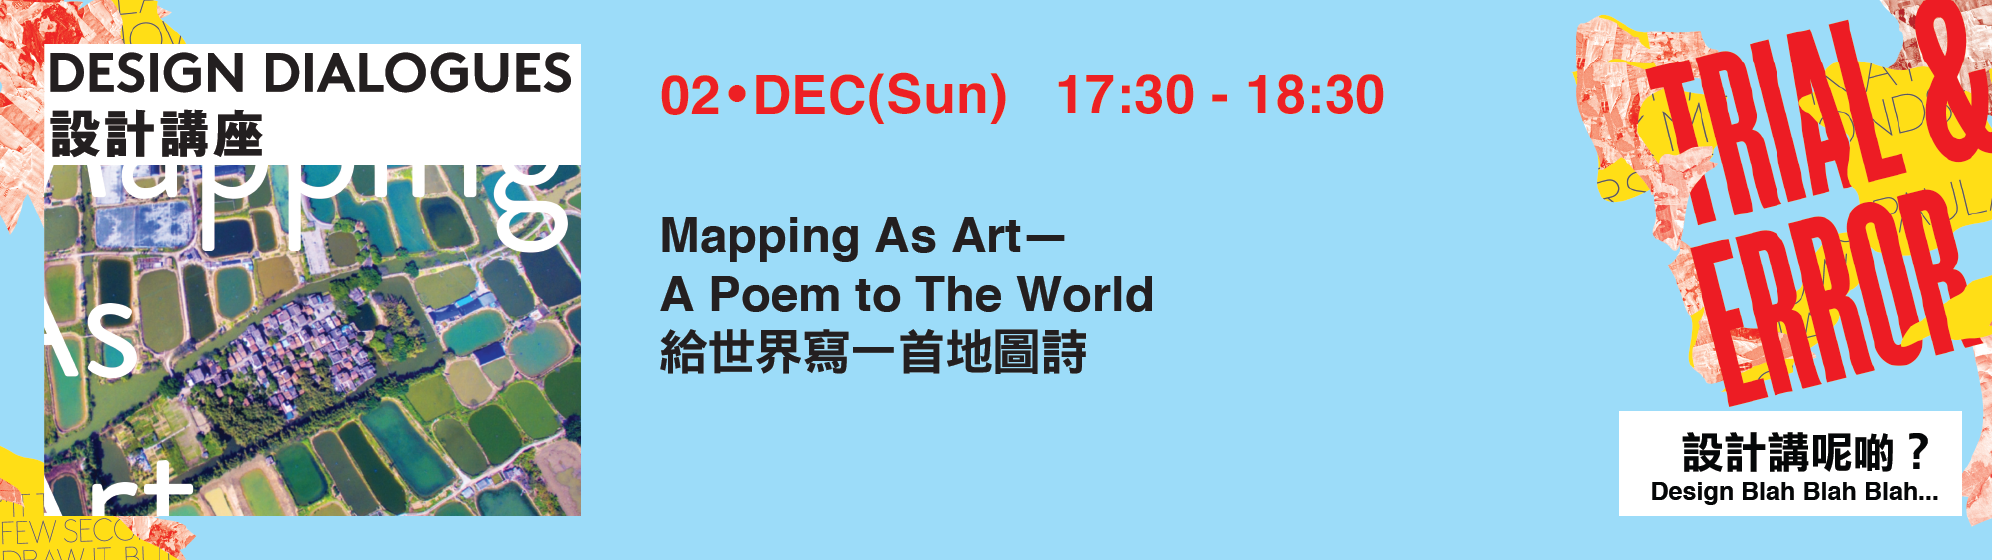 給世界寫一首地圖詩 | Mapping As Art—A Poem to The World